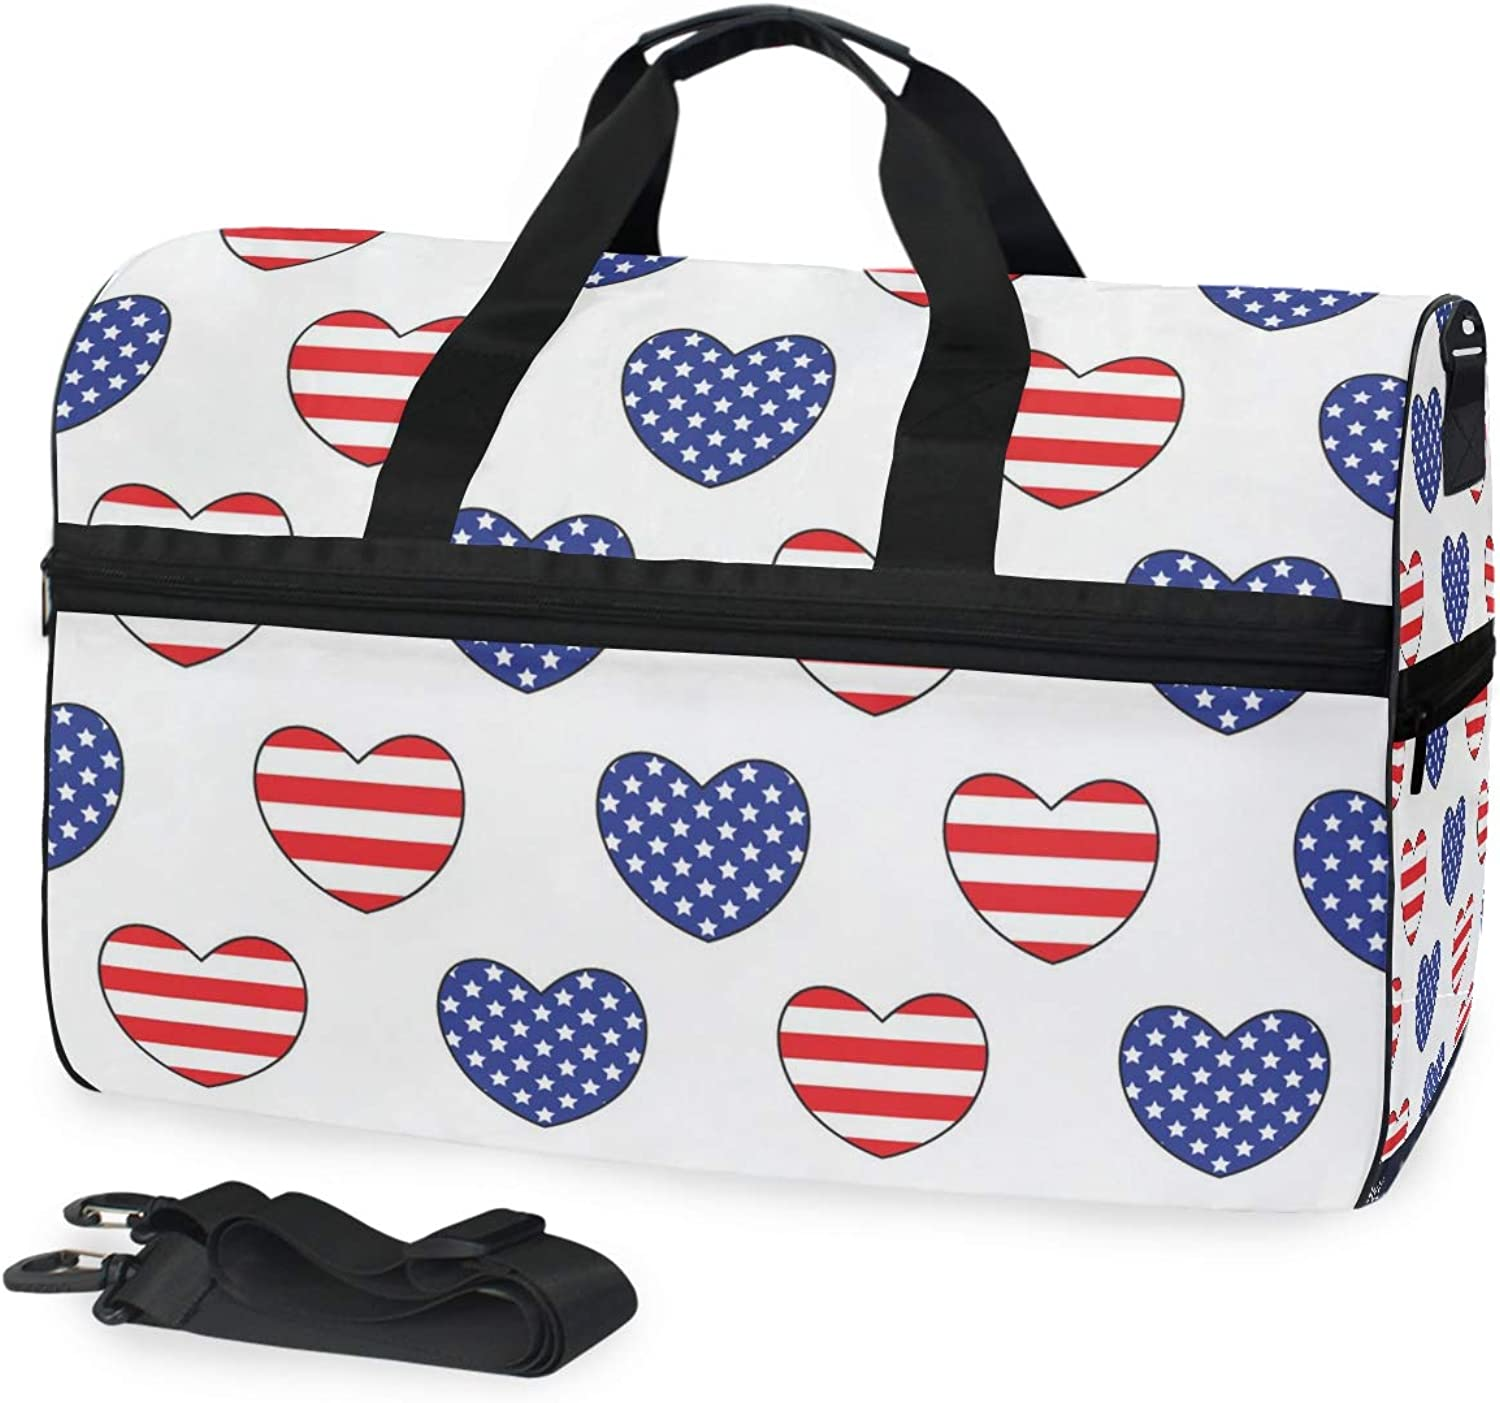 Hearts with The United States Flags color Large Travel Duffel Tote Bag Weekend Overnight Travel Bag Gym Bag Fitness Sports Bag with shoes Compartment